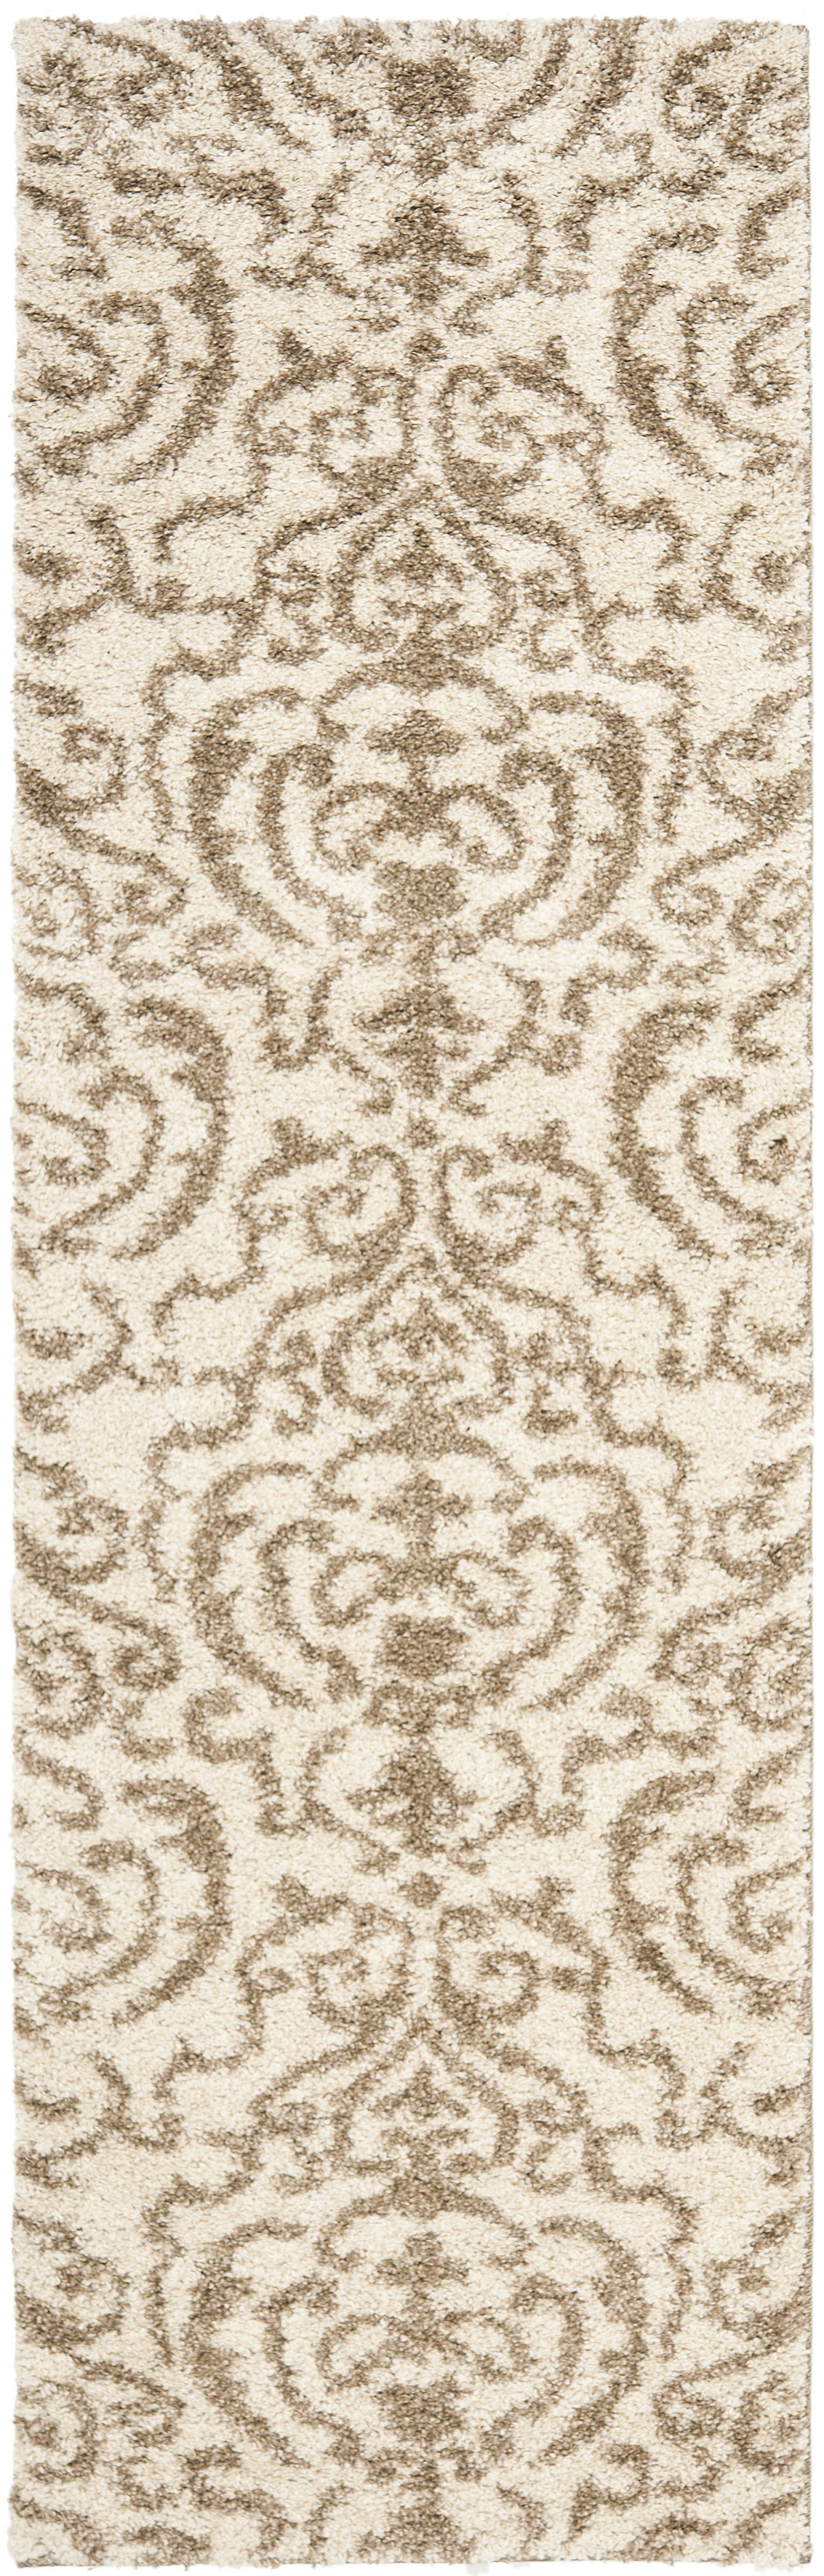 Hall Brown/Beige Area Rug Rug Size: 11' x 15'